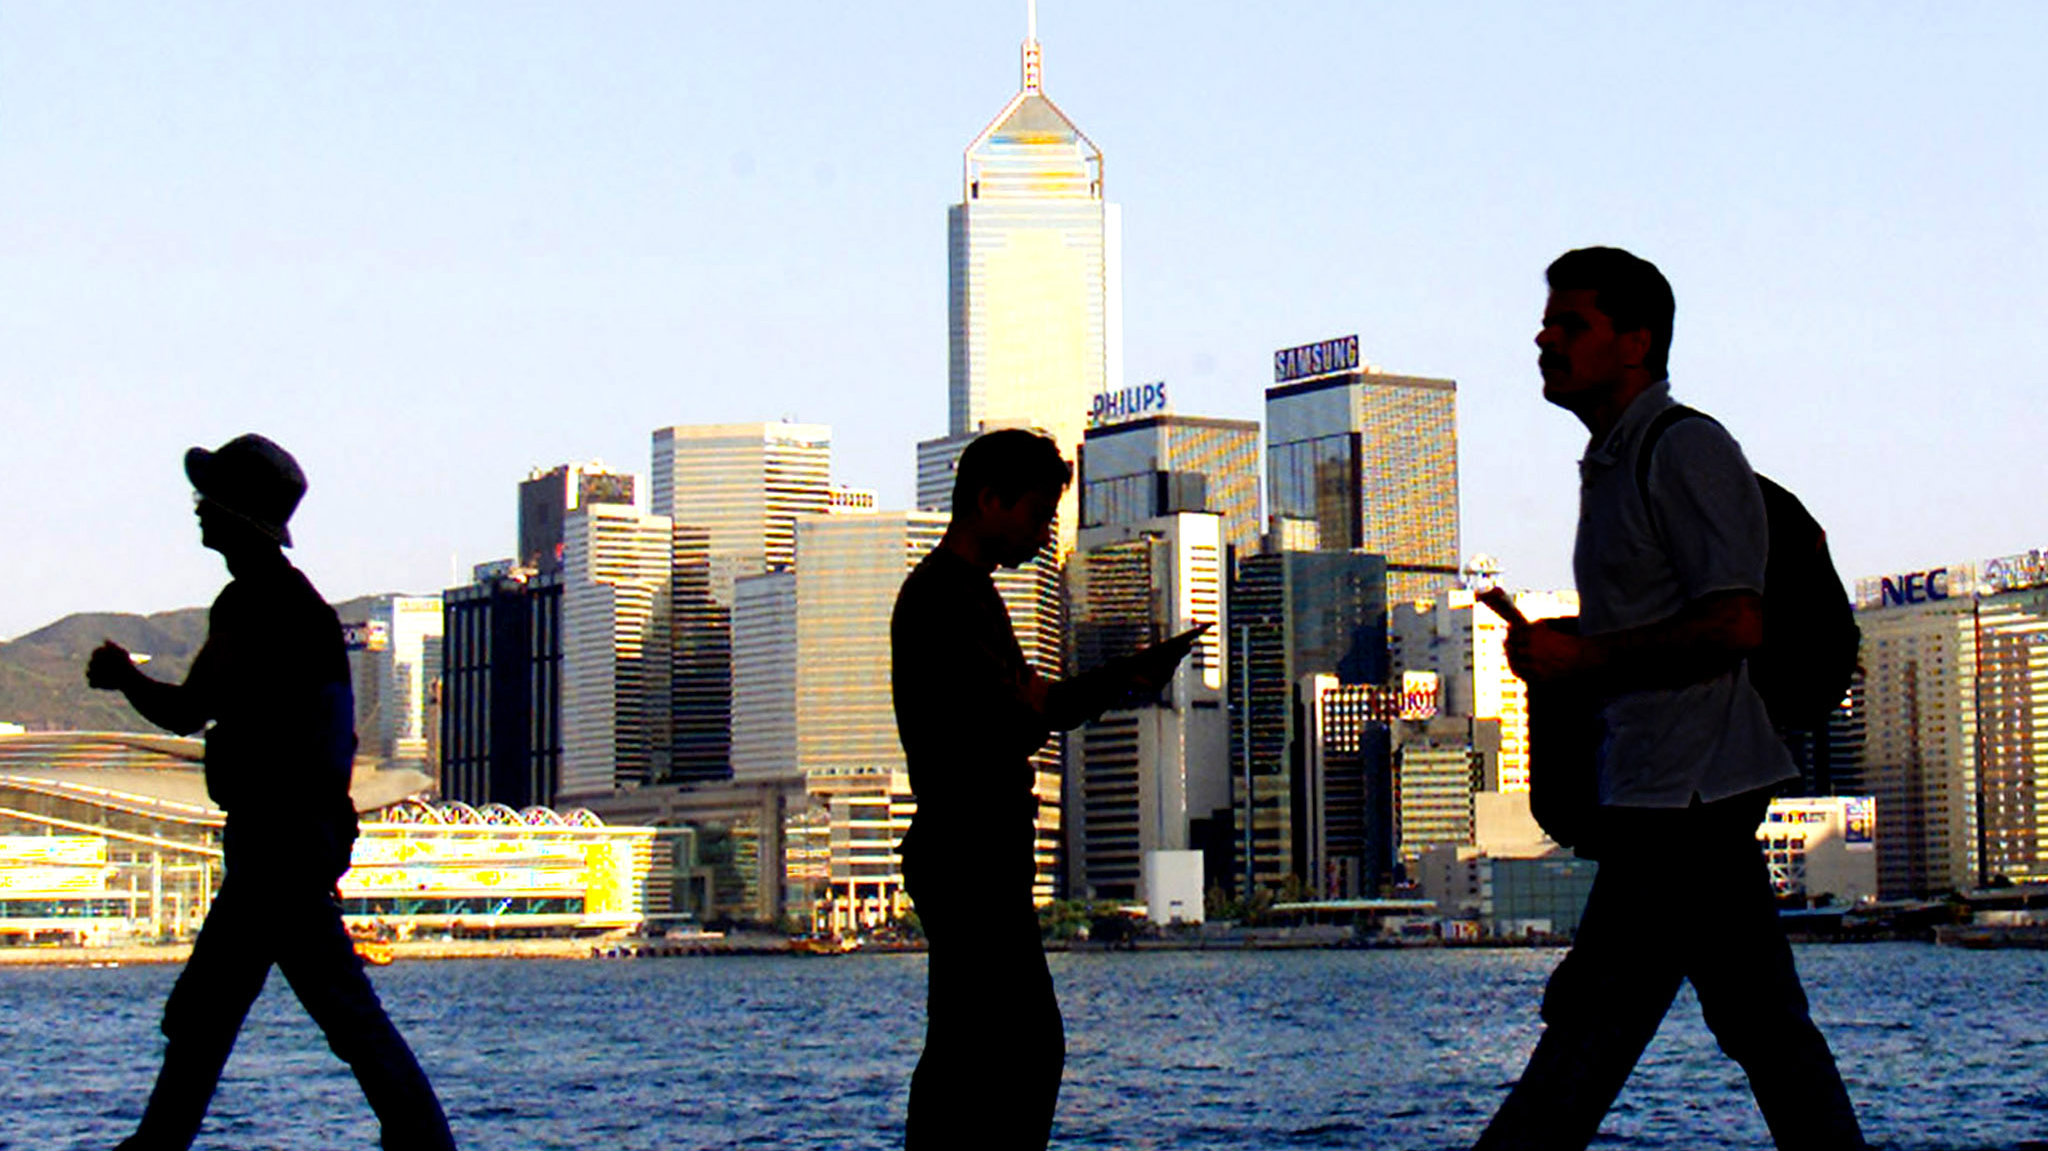 Passersby walk along the waterfront of Hong Kong's commercial Central district February 22, 2002. Hong Kong said it was facing serious budget problems which threatened to wipe out the enormous fiscal reserves, used to back its currency peg to the U.S. dollar, the pillar of financial stability in the territory's extremely open economy, in just seven years. REUTERS/Bobby Yip  BY/JD